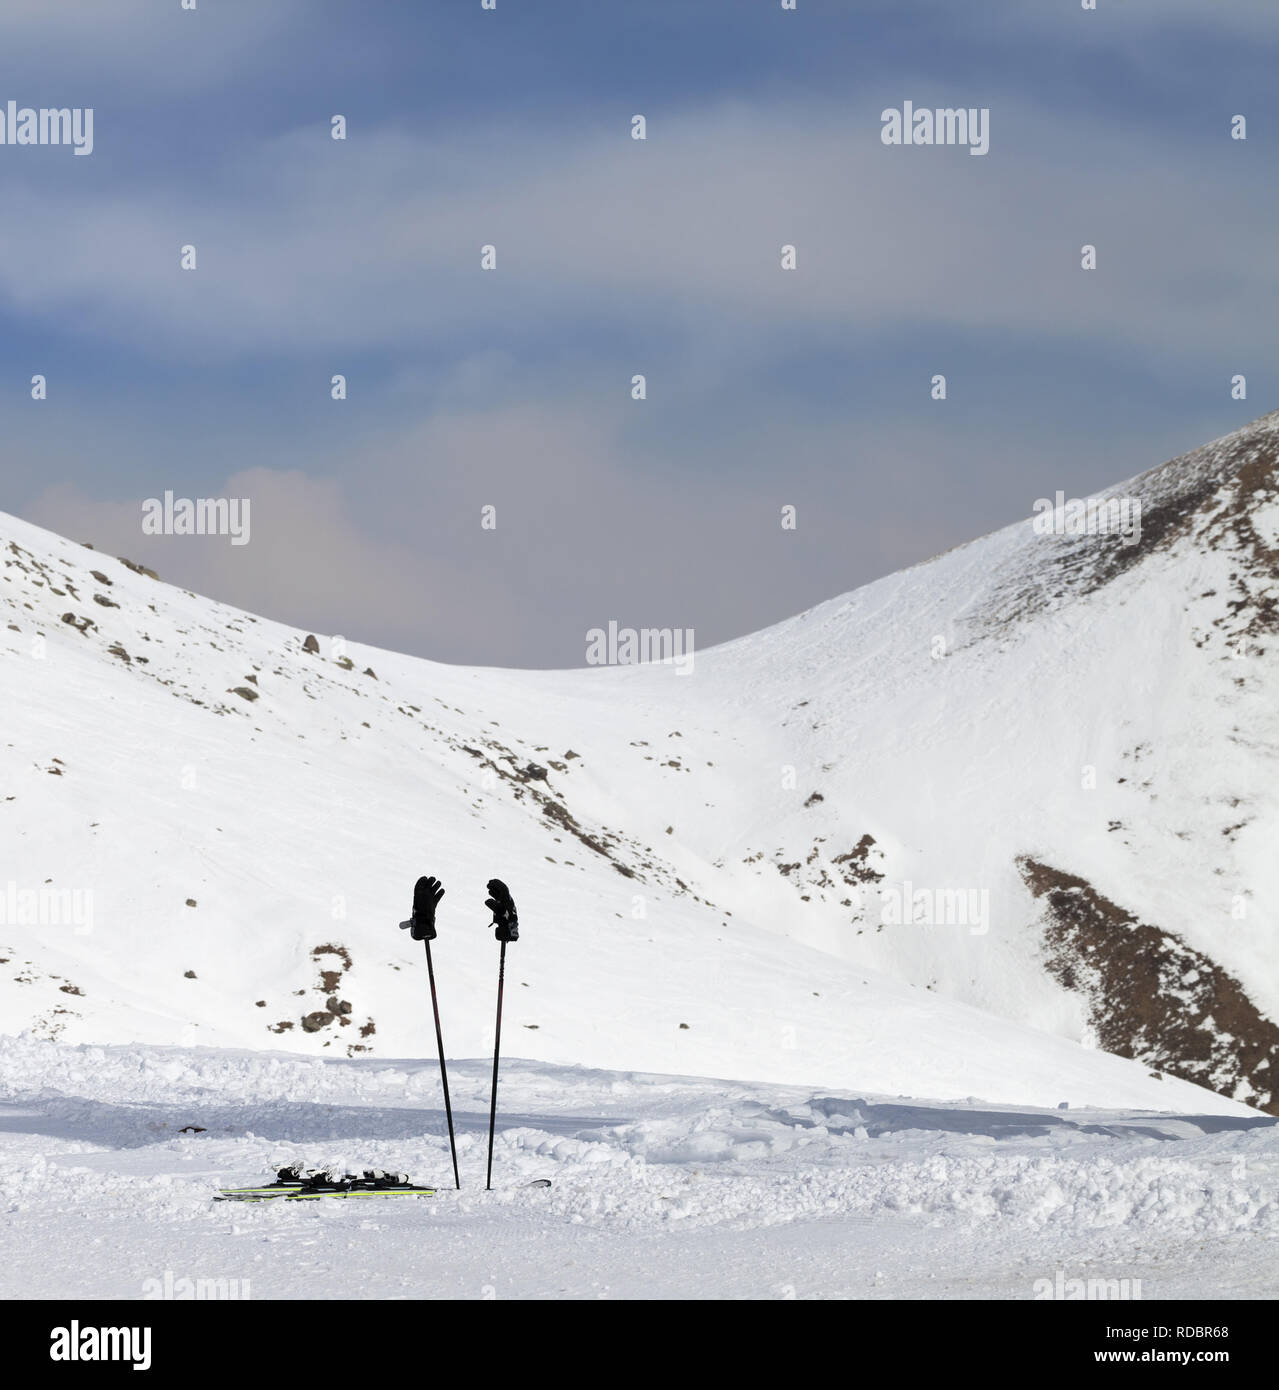 Skiing equipment on snowy ski slope at sunny winter day. Caucasus Mountains, Georgia, region Gudauri. - Stock Image